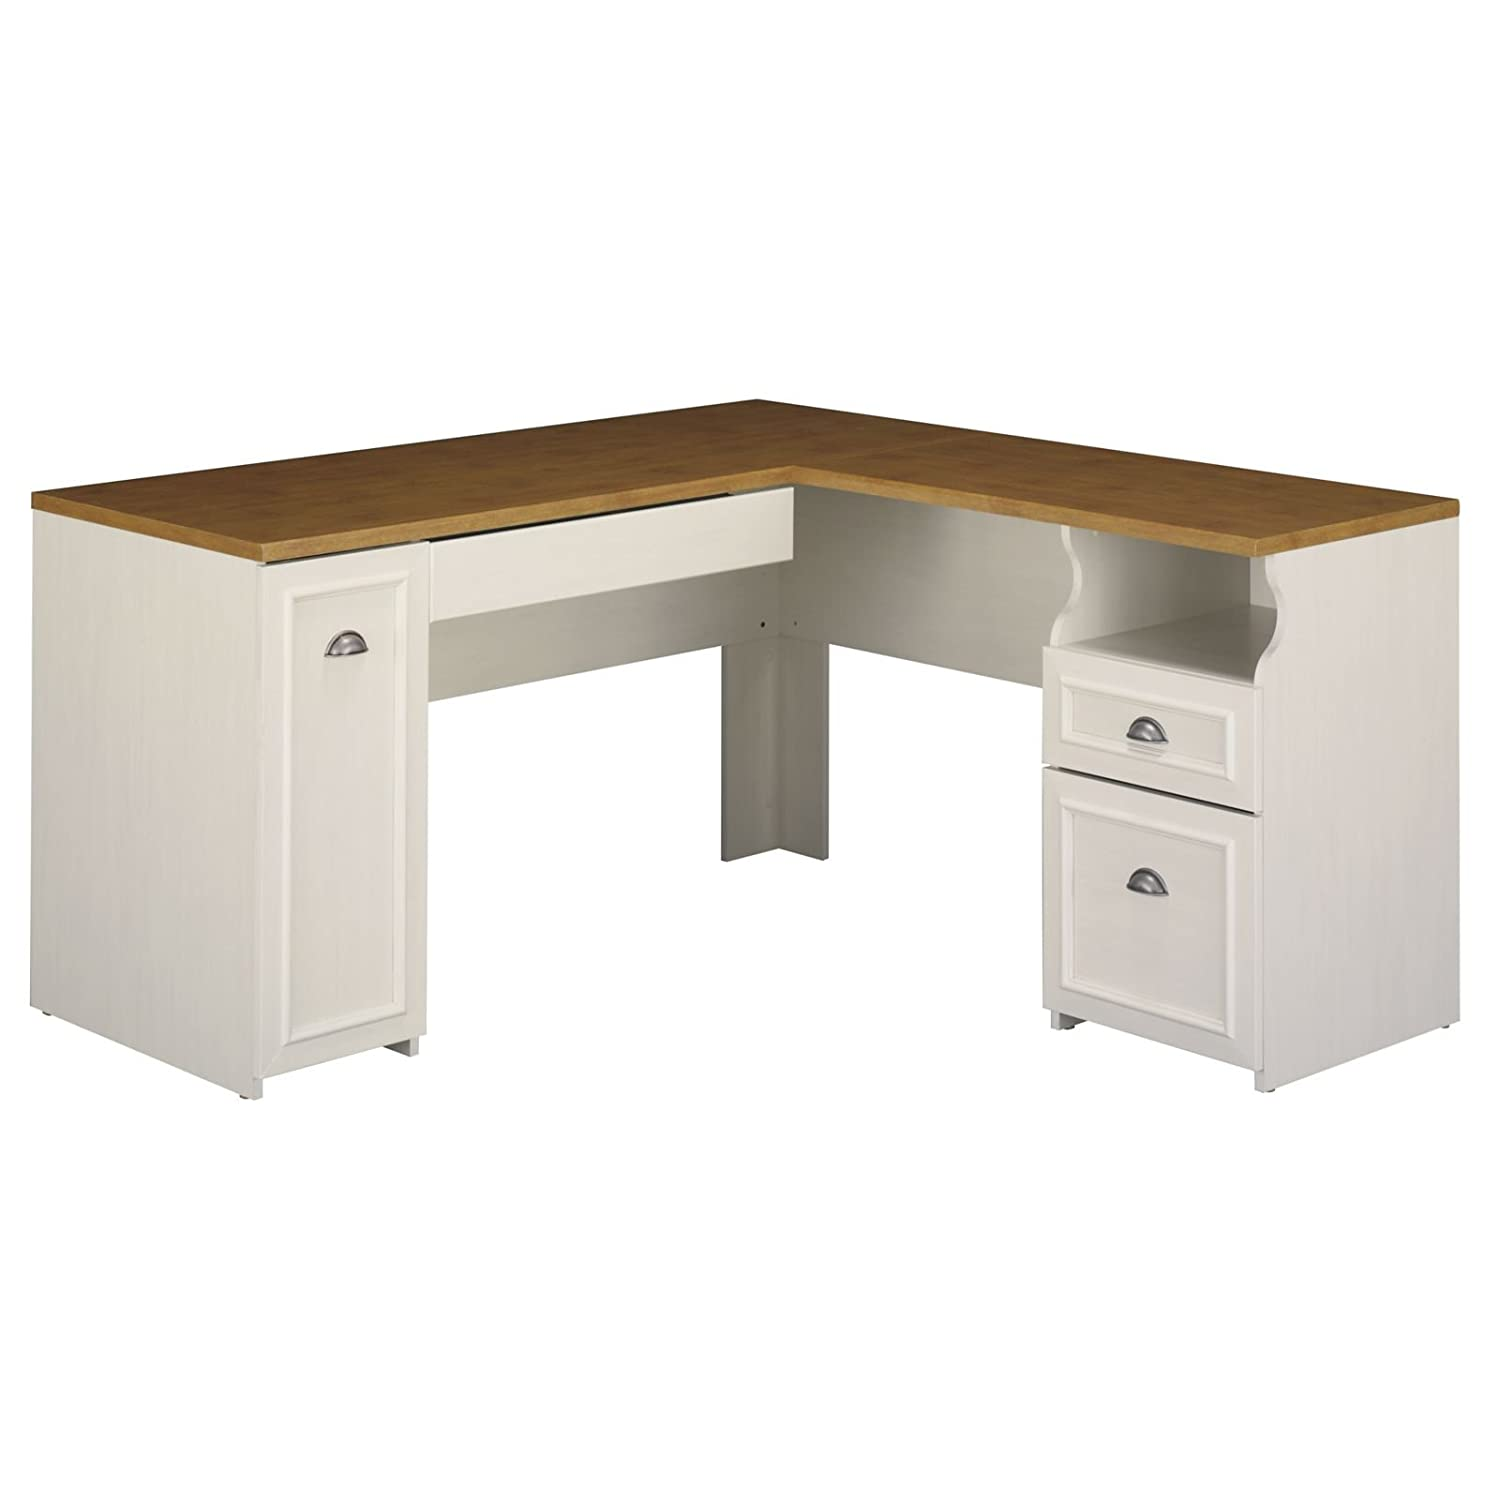 - Amazon.com: Fairview L Shaped Desk In Antique White: Kitchen & Dining